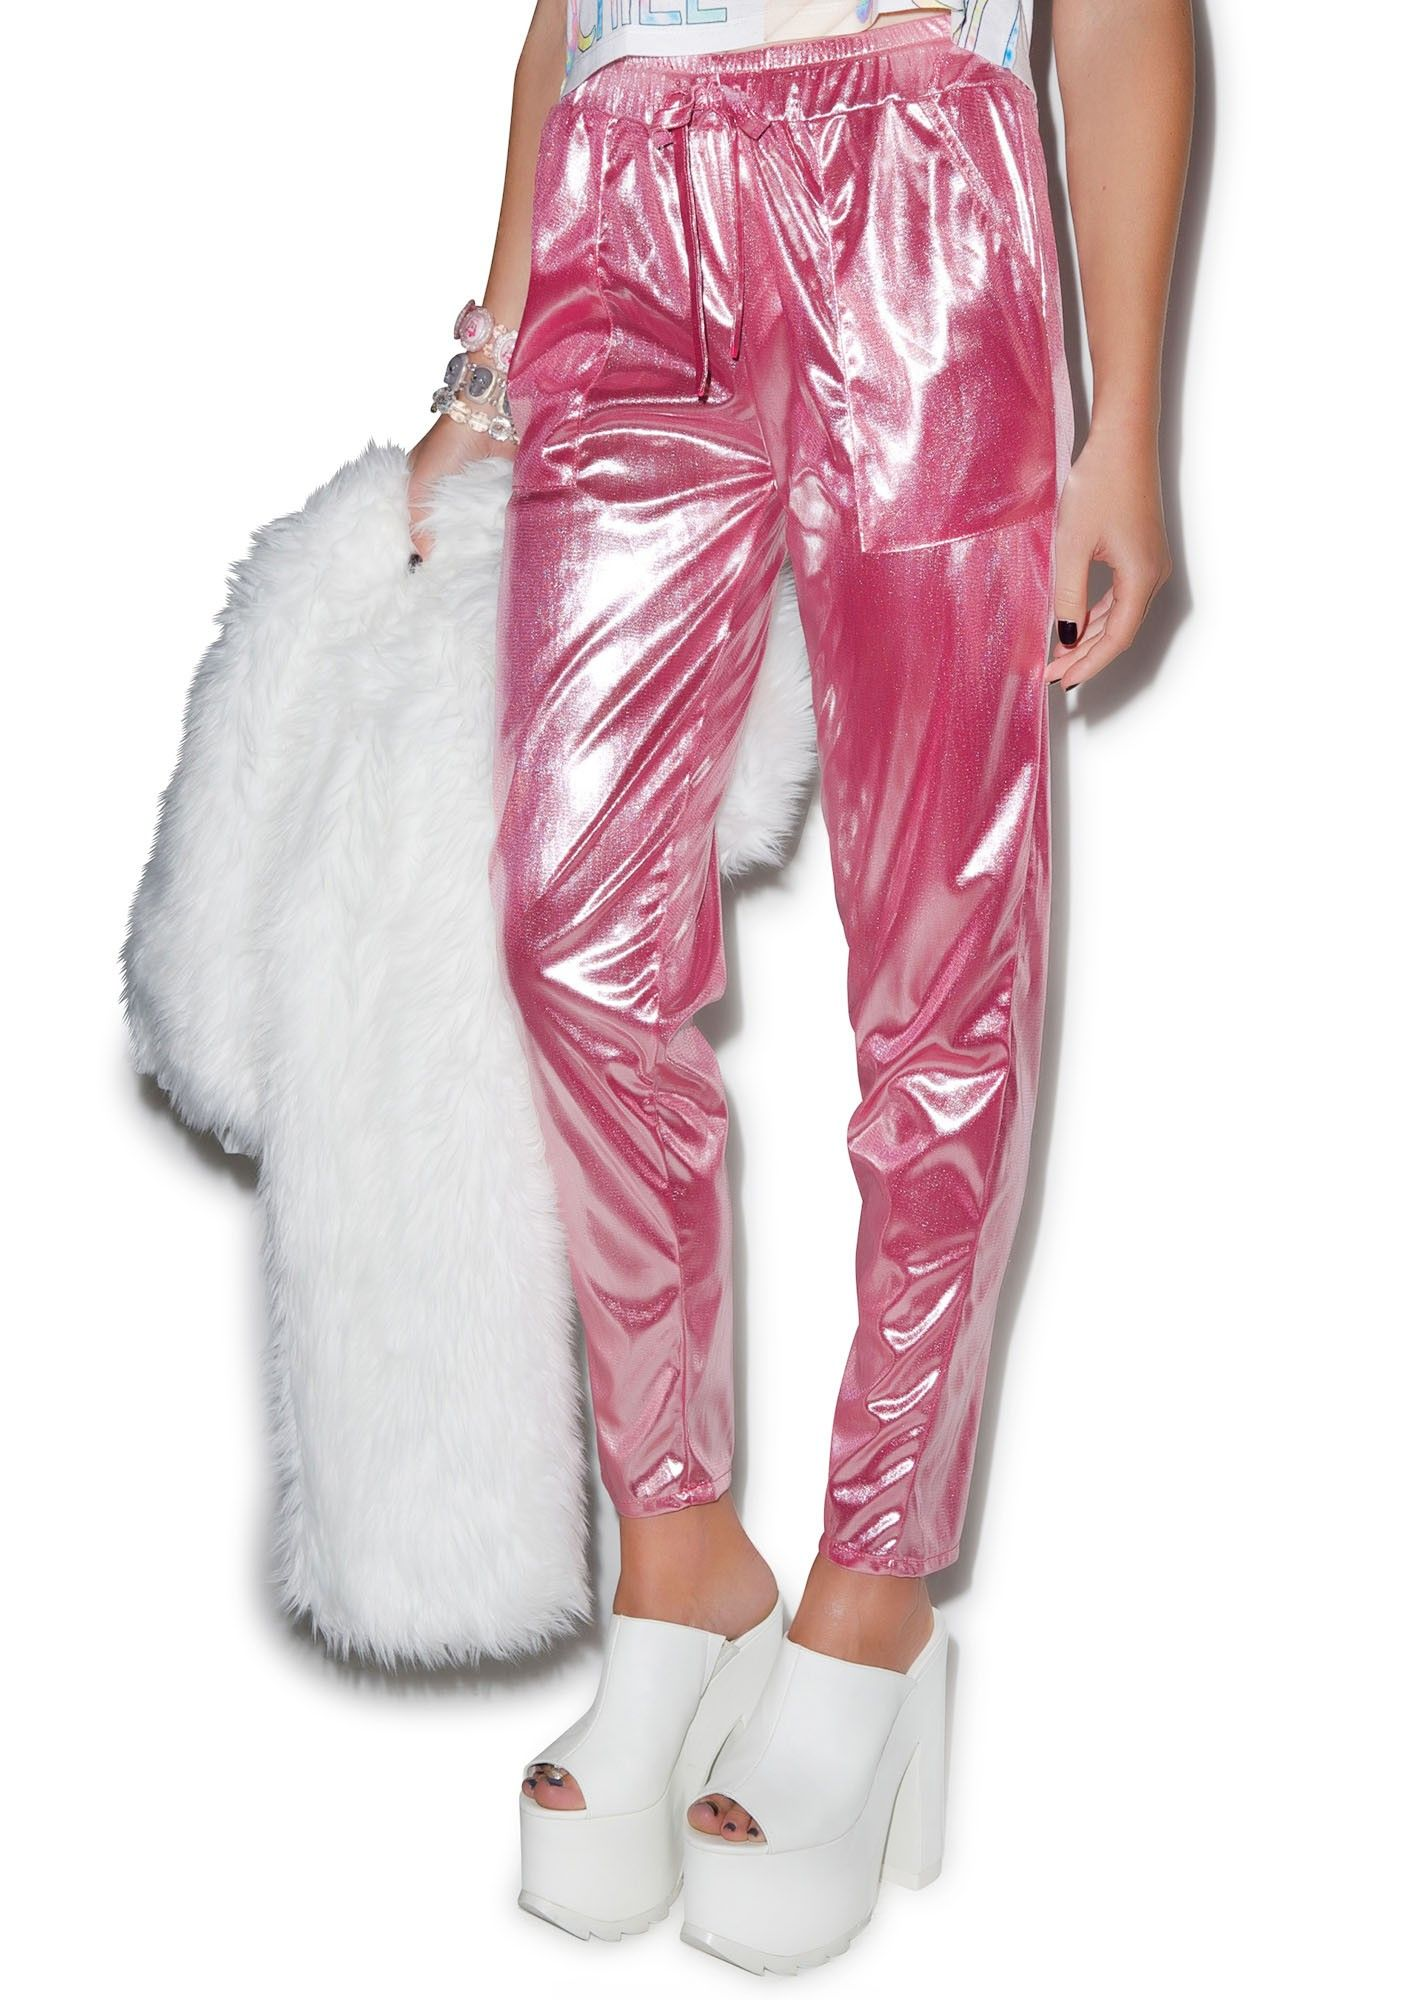 Bubblicious Metallic Pants | Dolls KillI Idk why but I like these, they're different